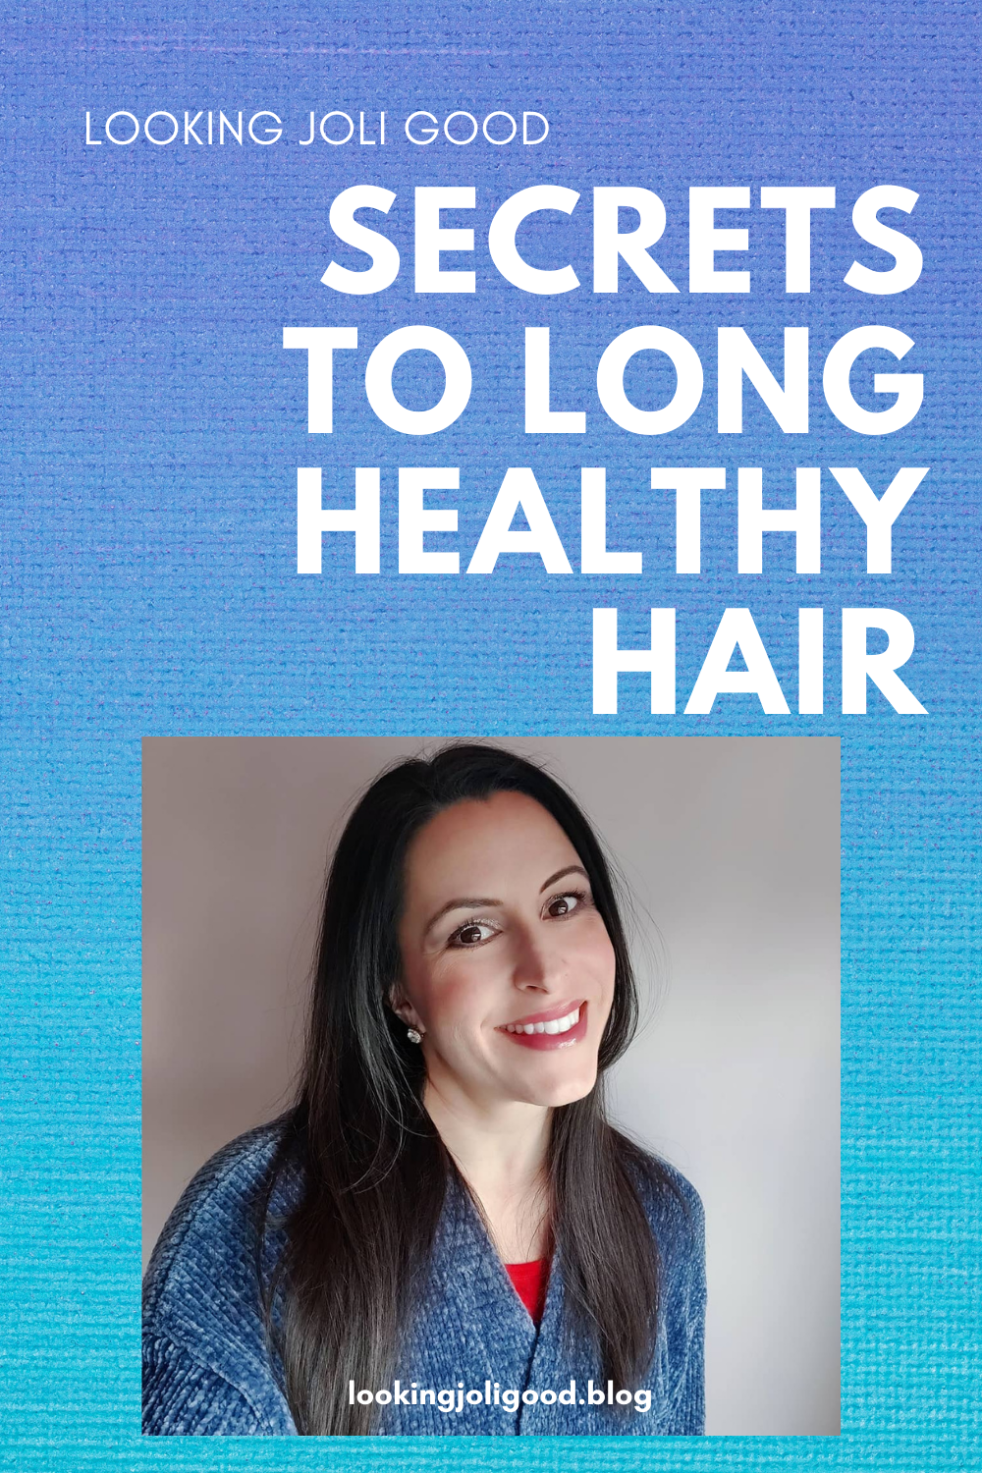 secrets to long healthy hair | lookingjoligood.blog